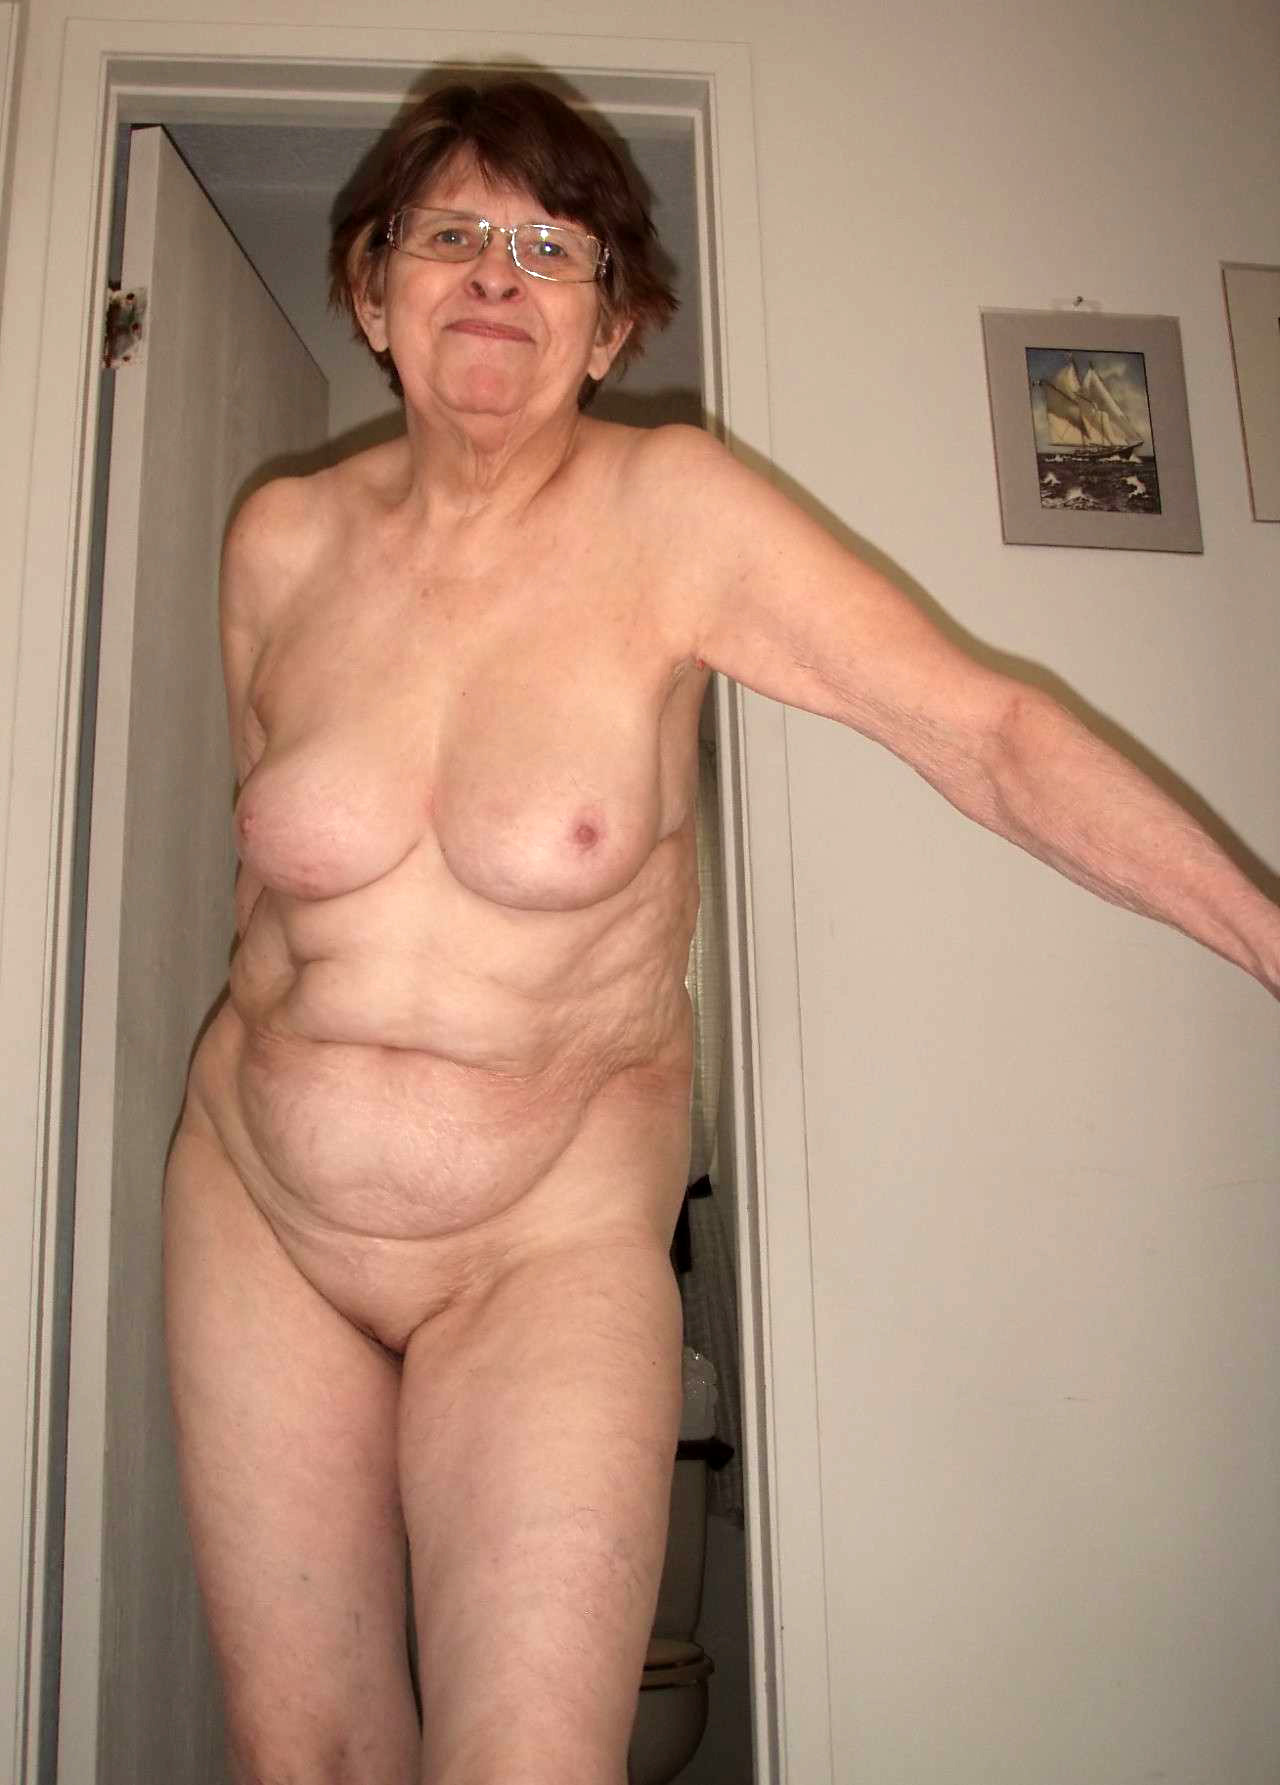 Have old grandma nude authoritative message